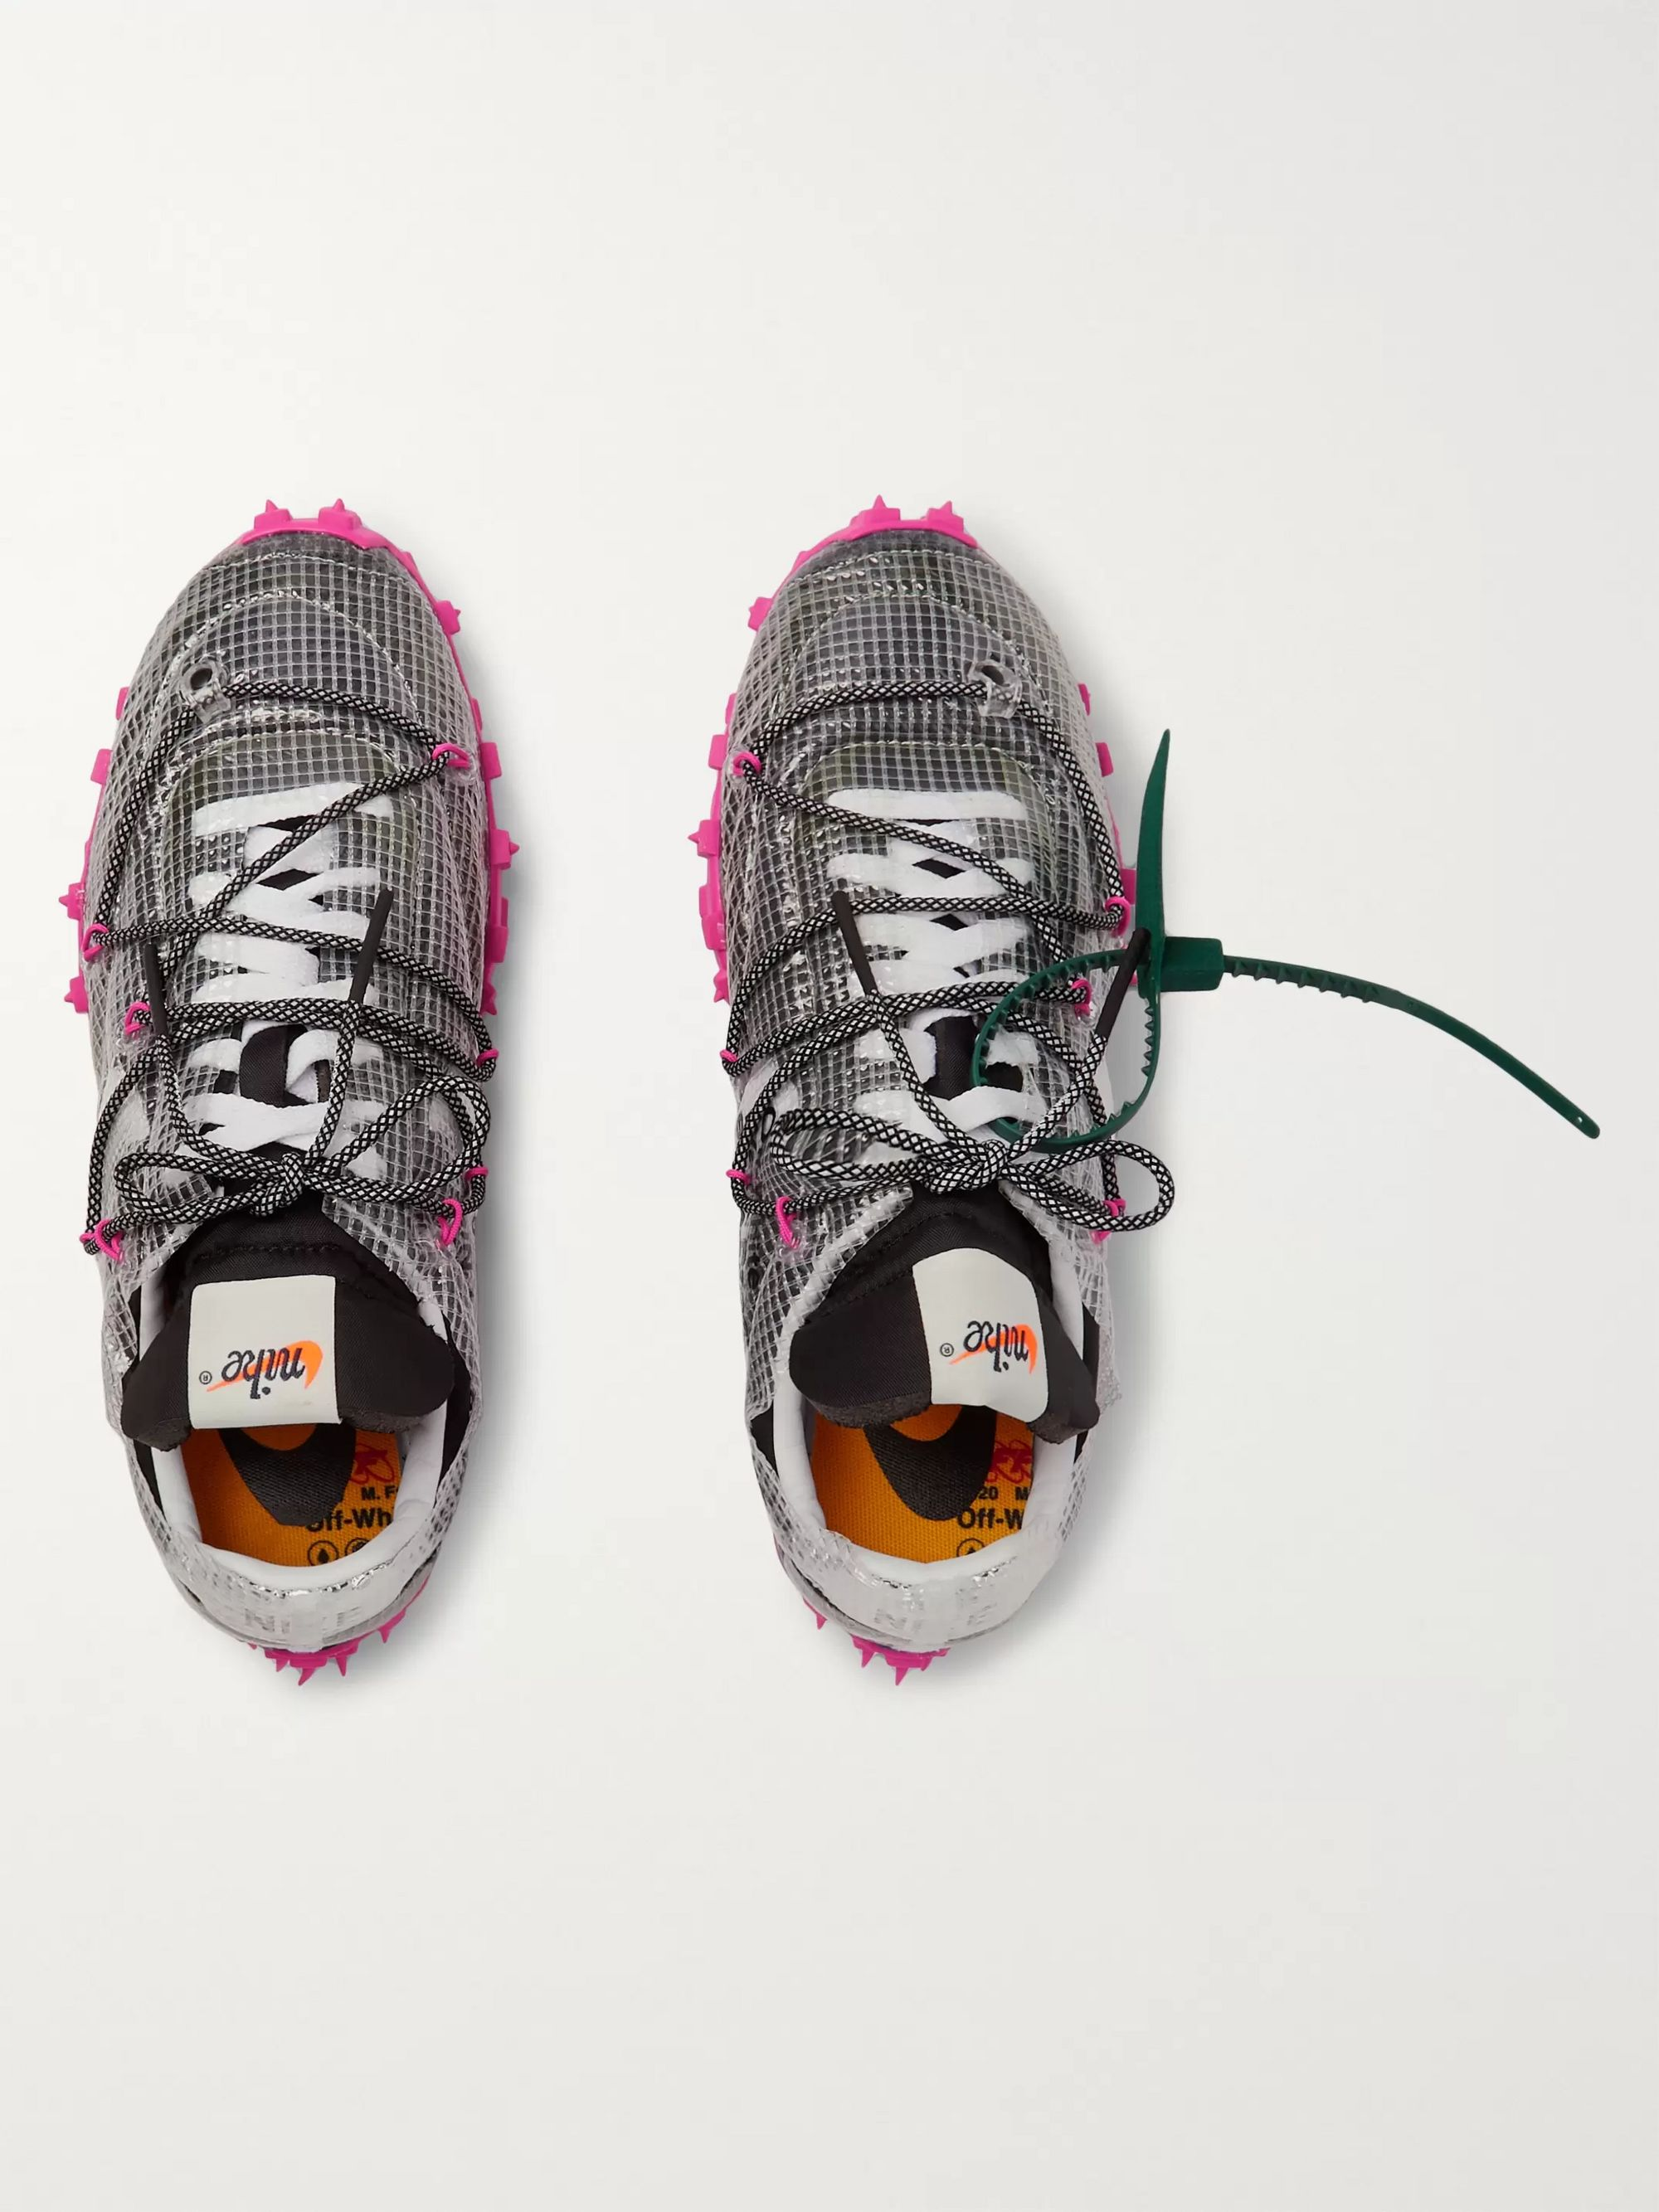 Nike + Off-White Waffle Racer Ripstop, Suede, Nylon and Mesh Sneakers